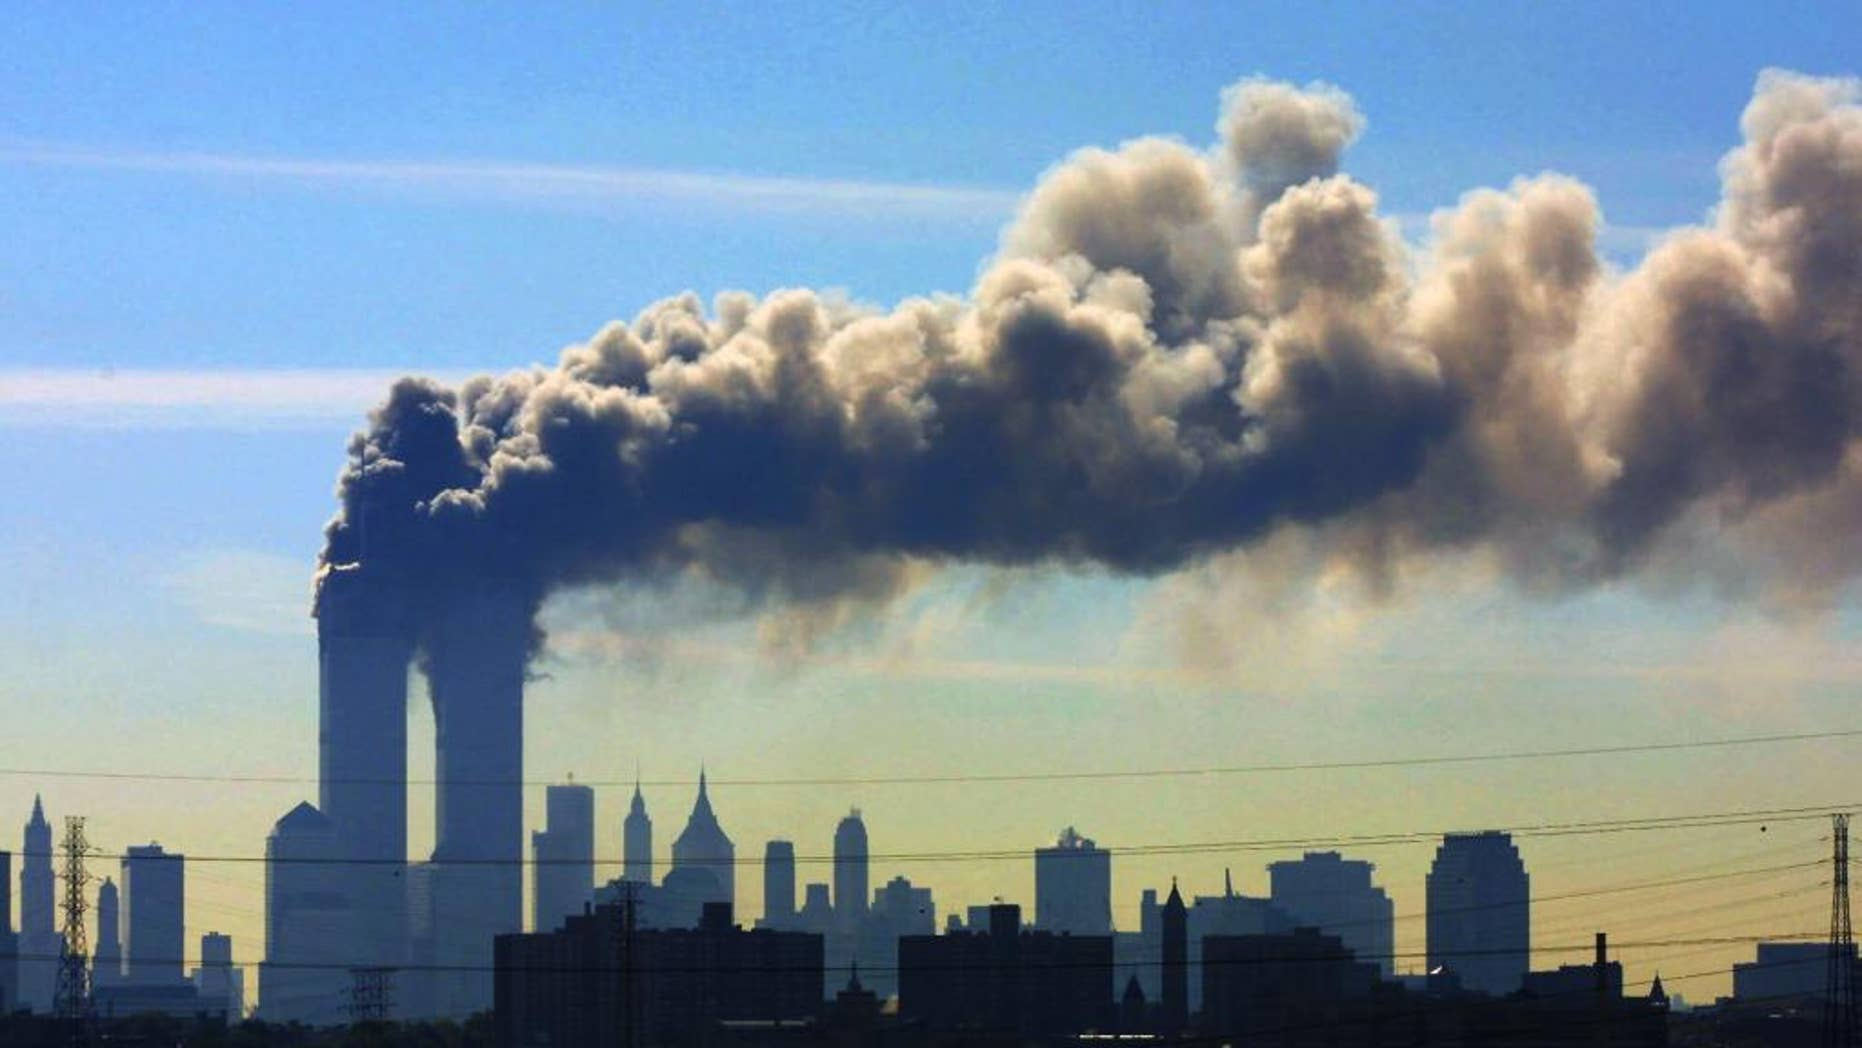 Smoke billows from the twin towers of the World Trade Center in New York after airplanes crashed into both towers on Sept. 11, 2001.